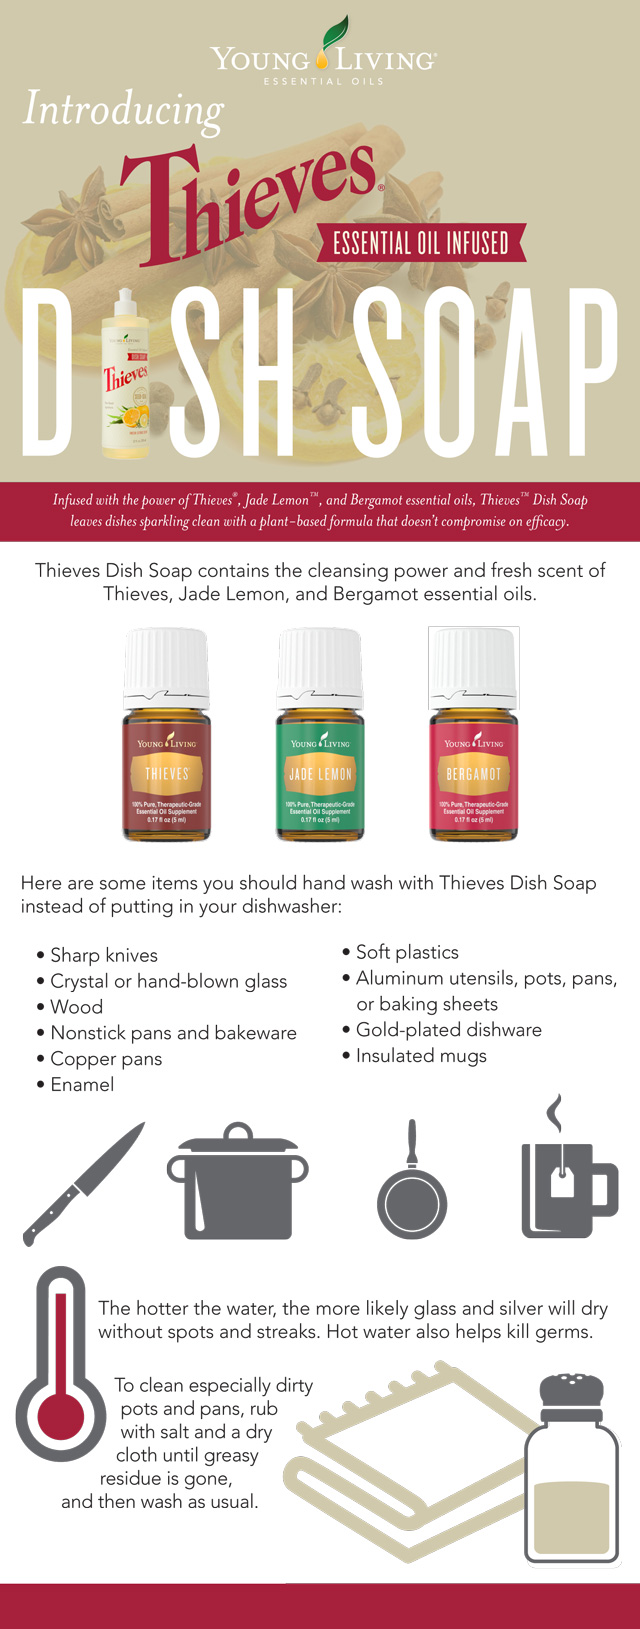 Thieves Dish Soap Infographic